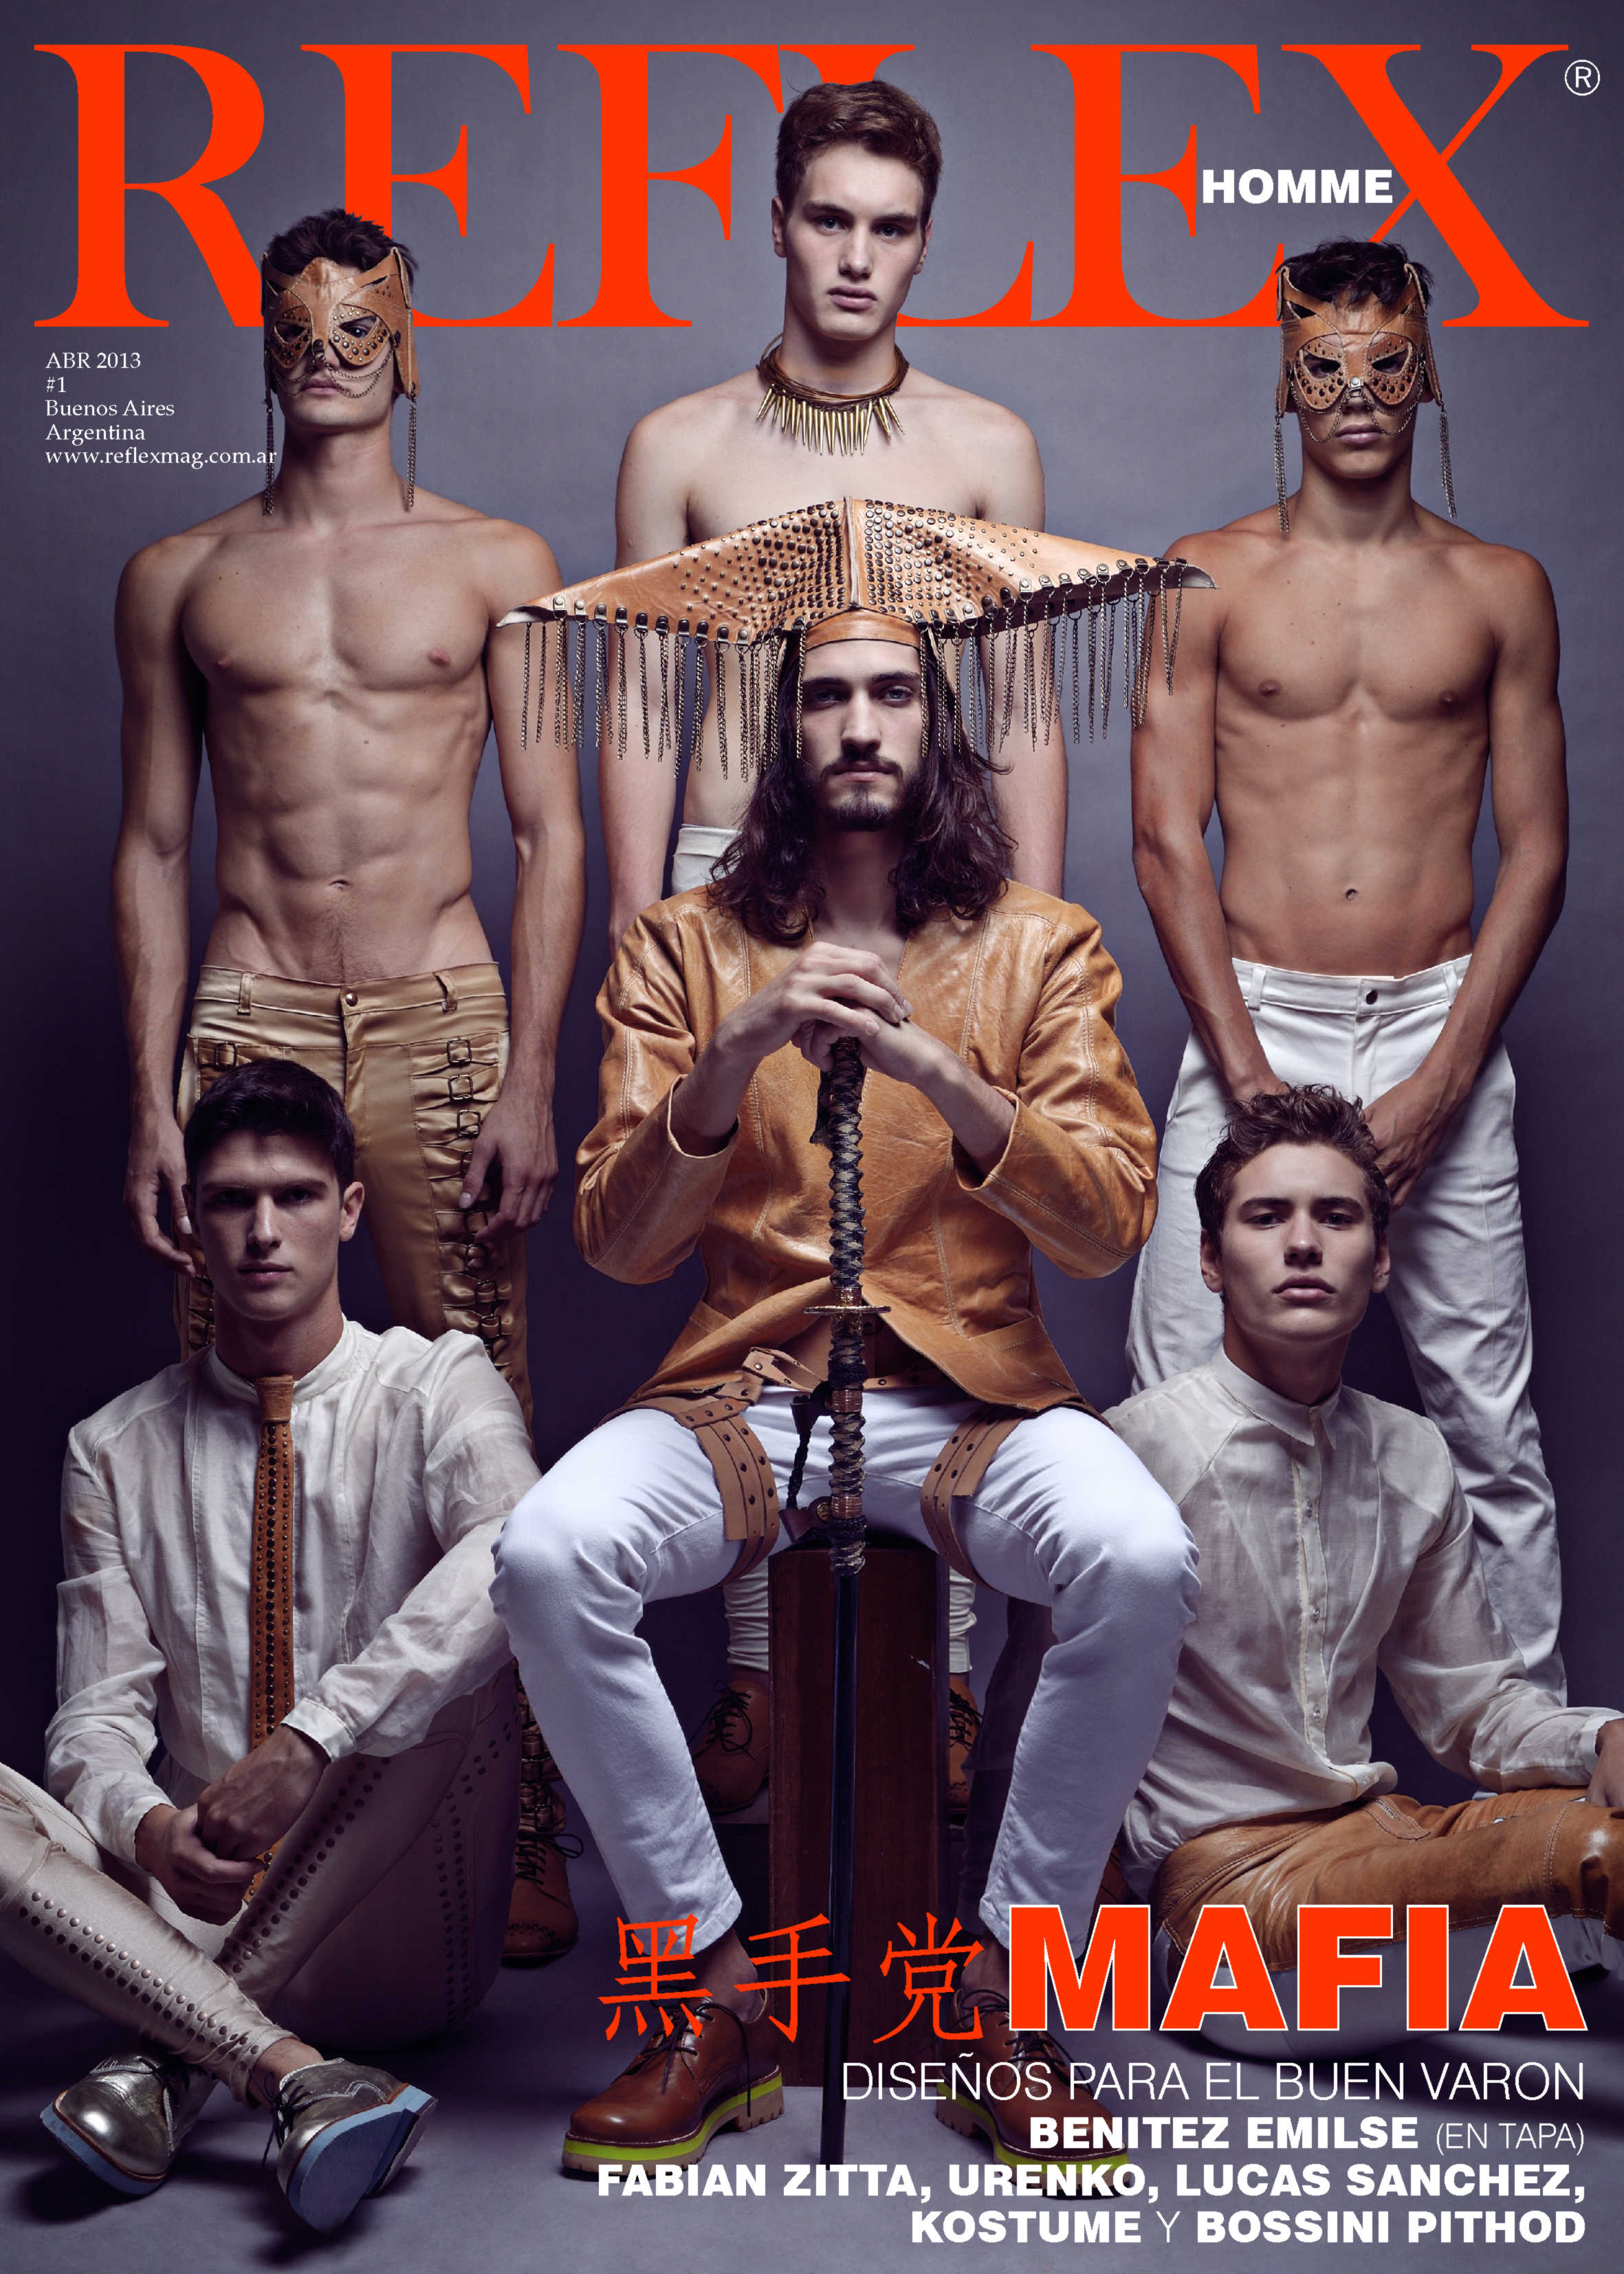 Andres Risso & Others Cover Reflex Homme